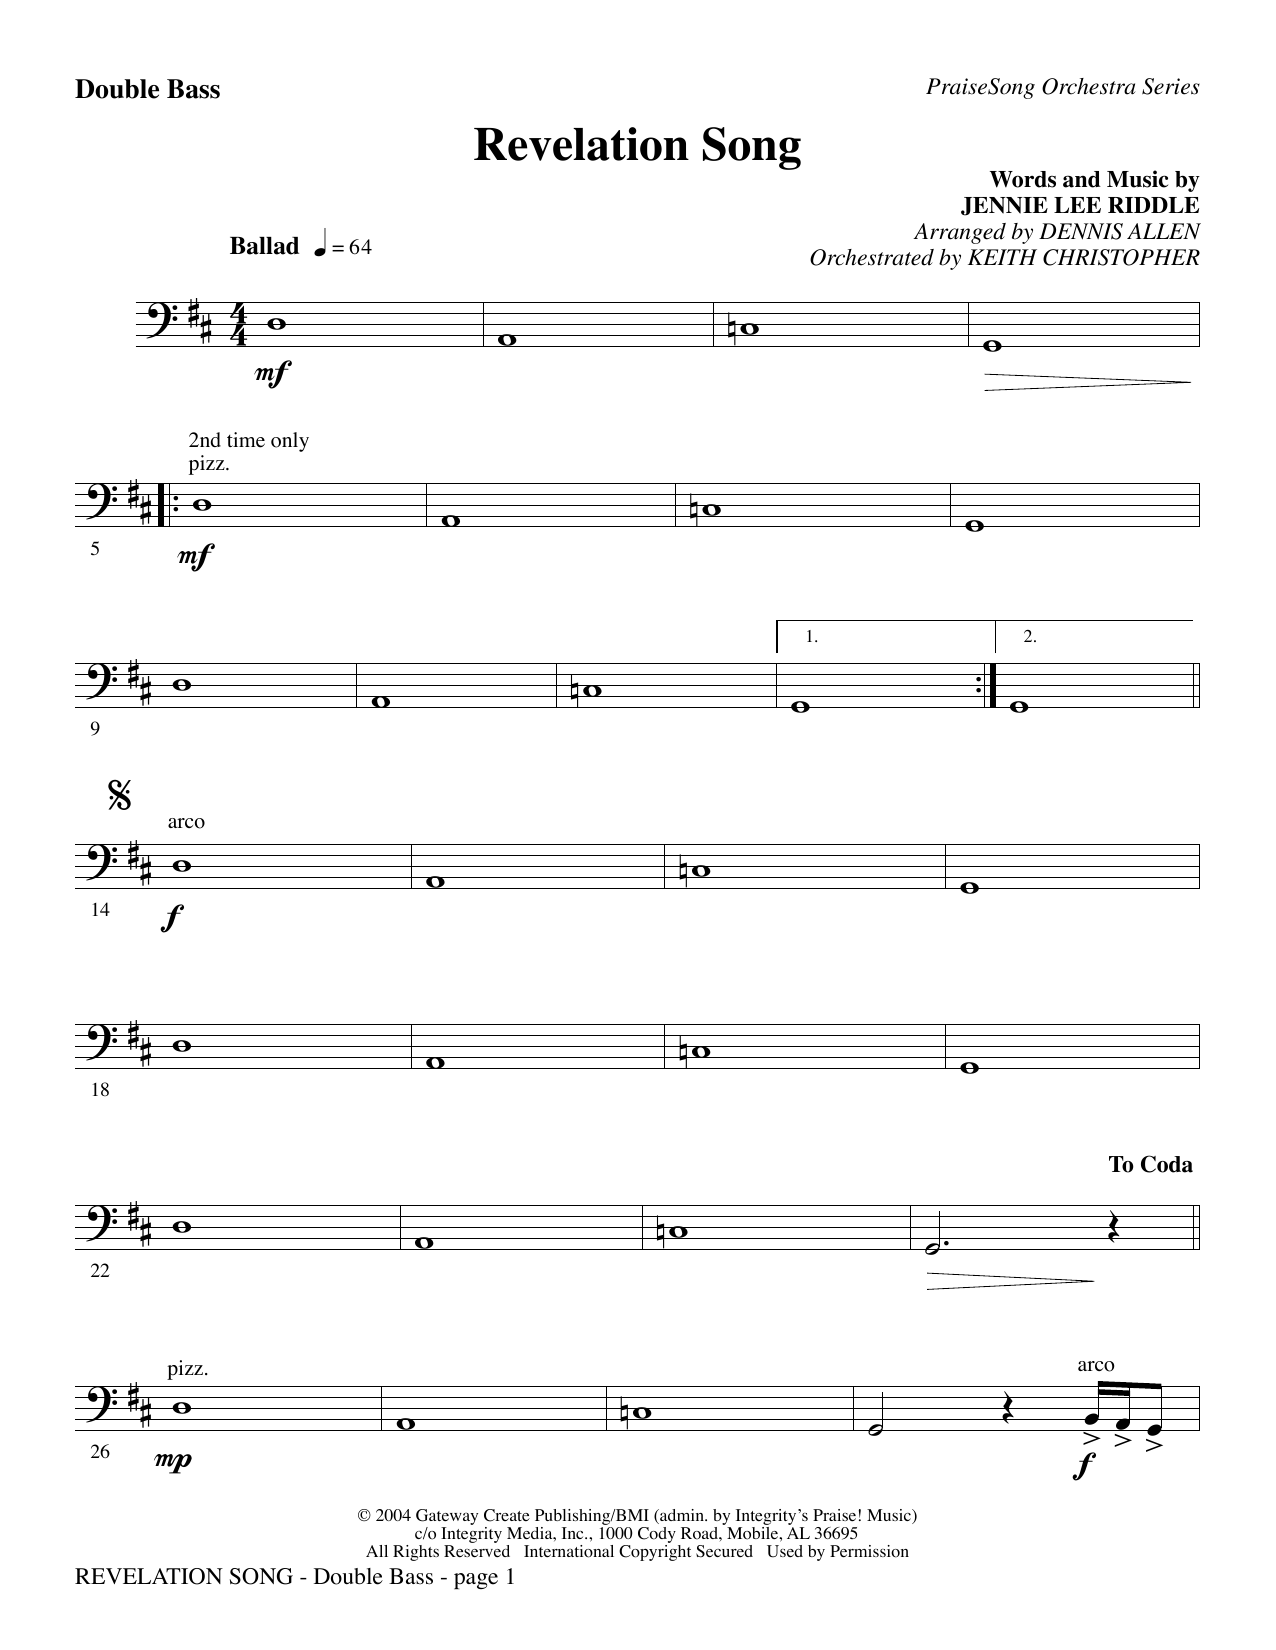 Revelation Song - Double Bass Sheet Music